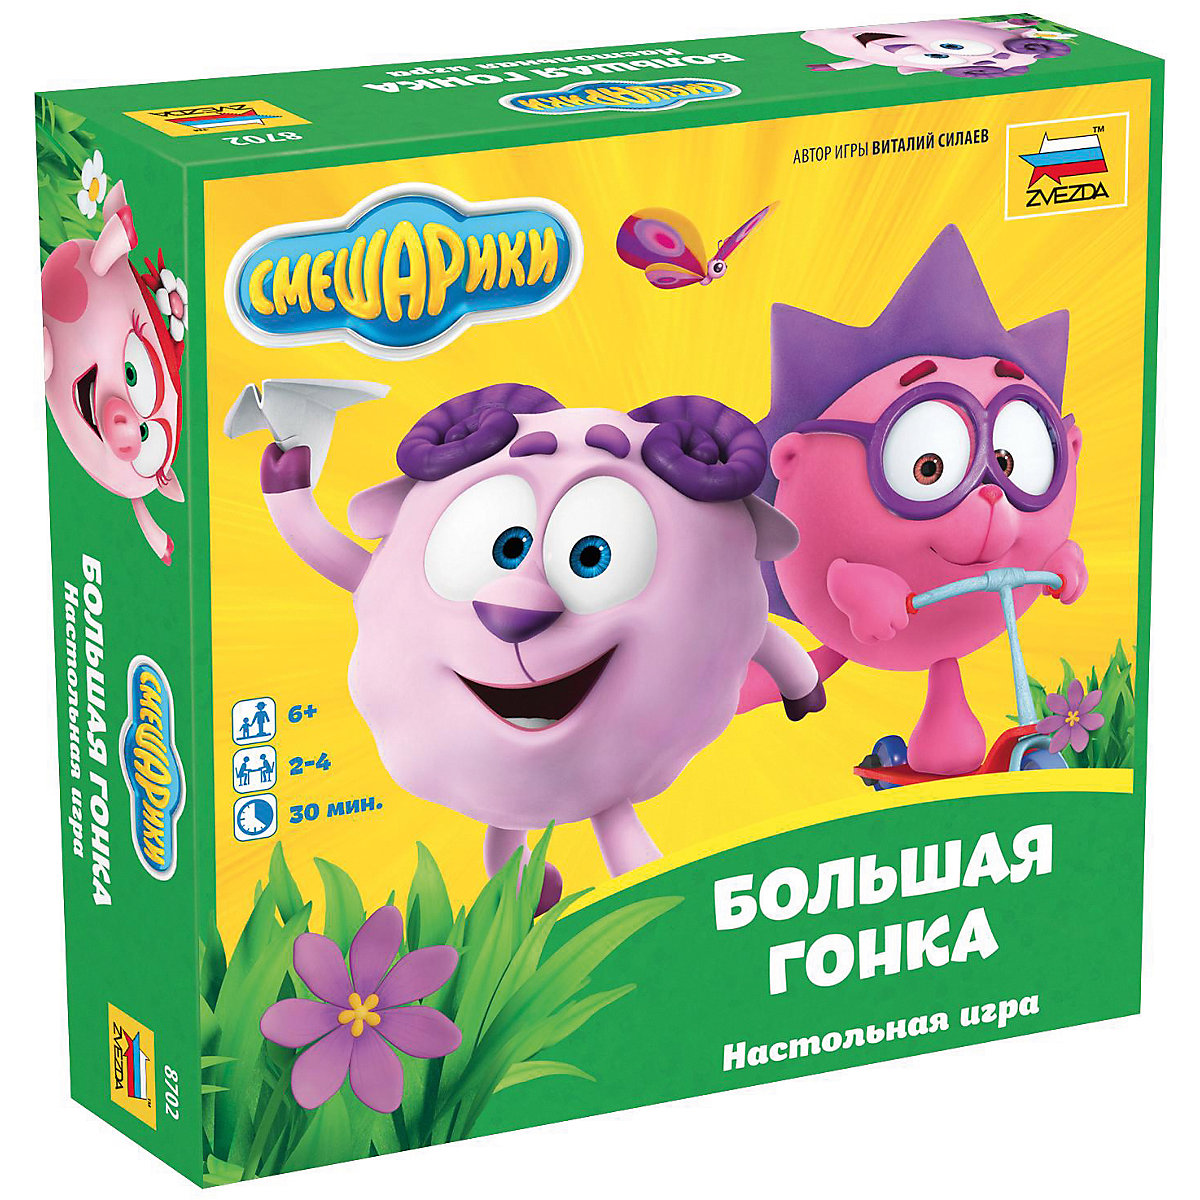 Zvezda Party Games 8988594 board game fine motor skills for the company developing play girl boy friends image